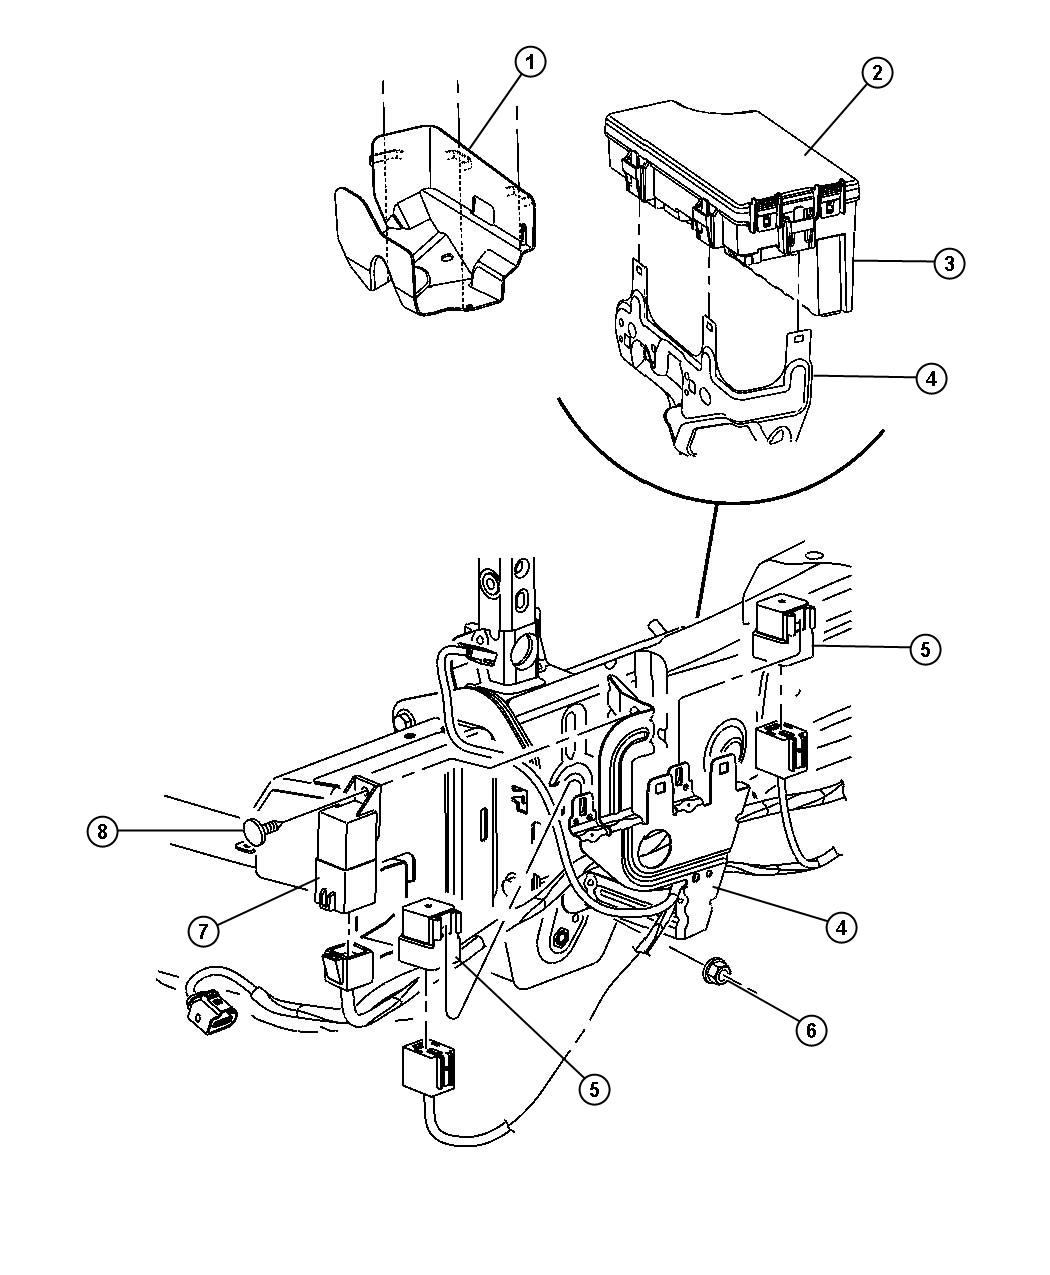 ShowAssembly furthermore 99 Dodge Caravan Wiring Diagram furthermore ShowAssembly as well 2012 Ram 2500 Hemi 5 7 Ltr as well 1911 Barrel Schematic Diagram. on 2010 dodge caliber parts diagrams